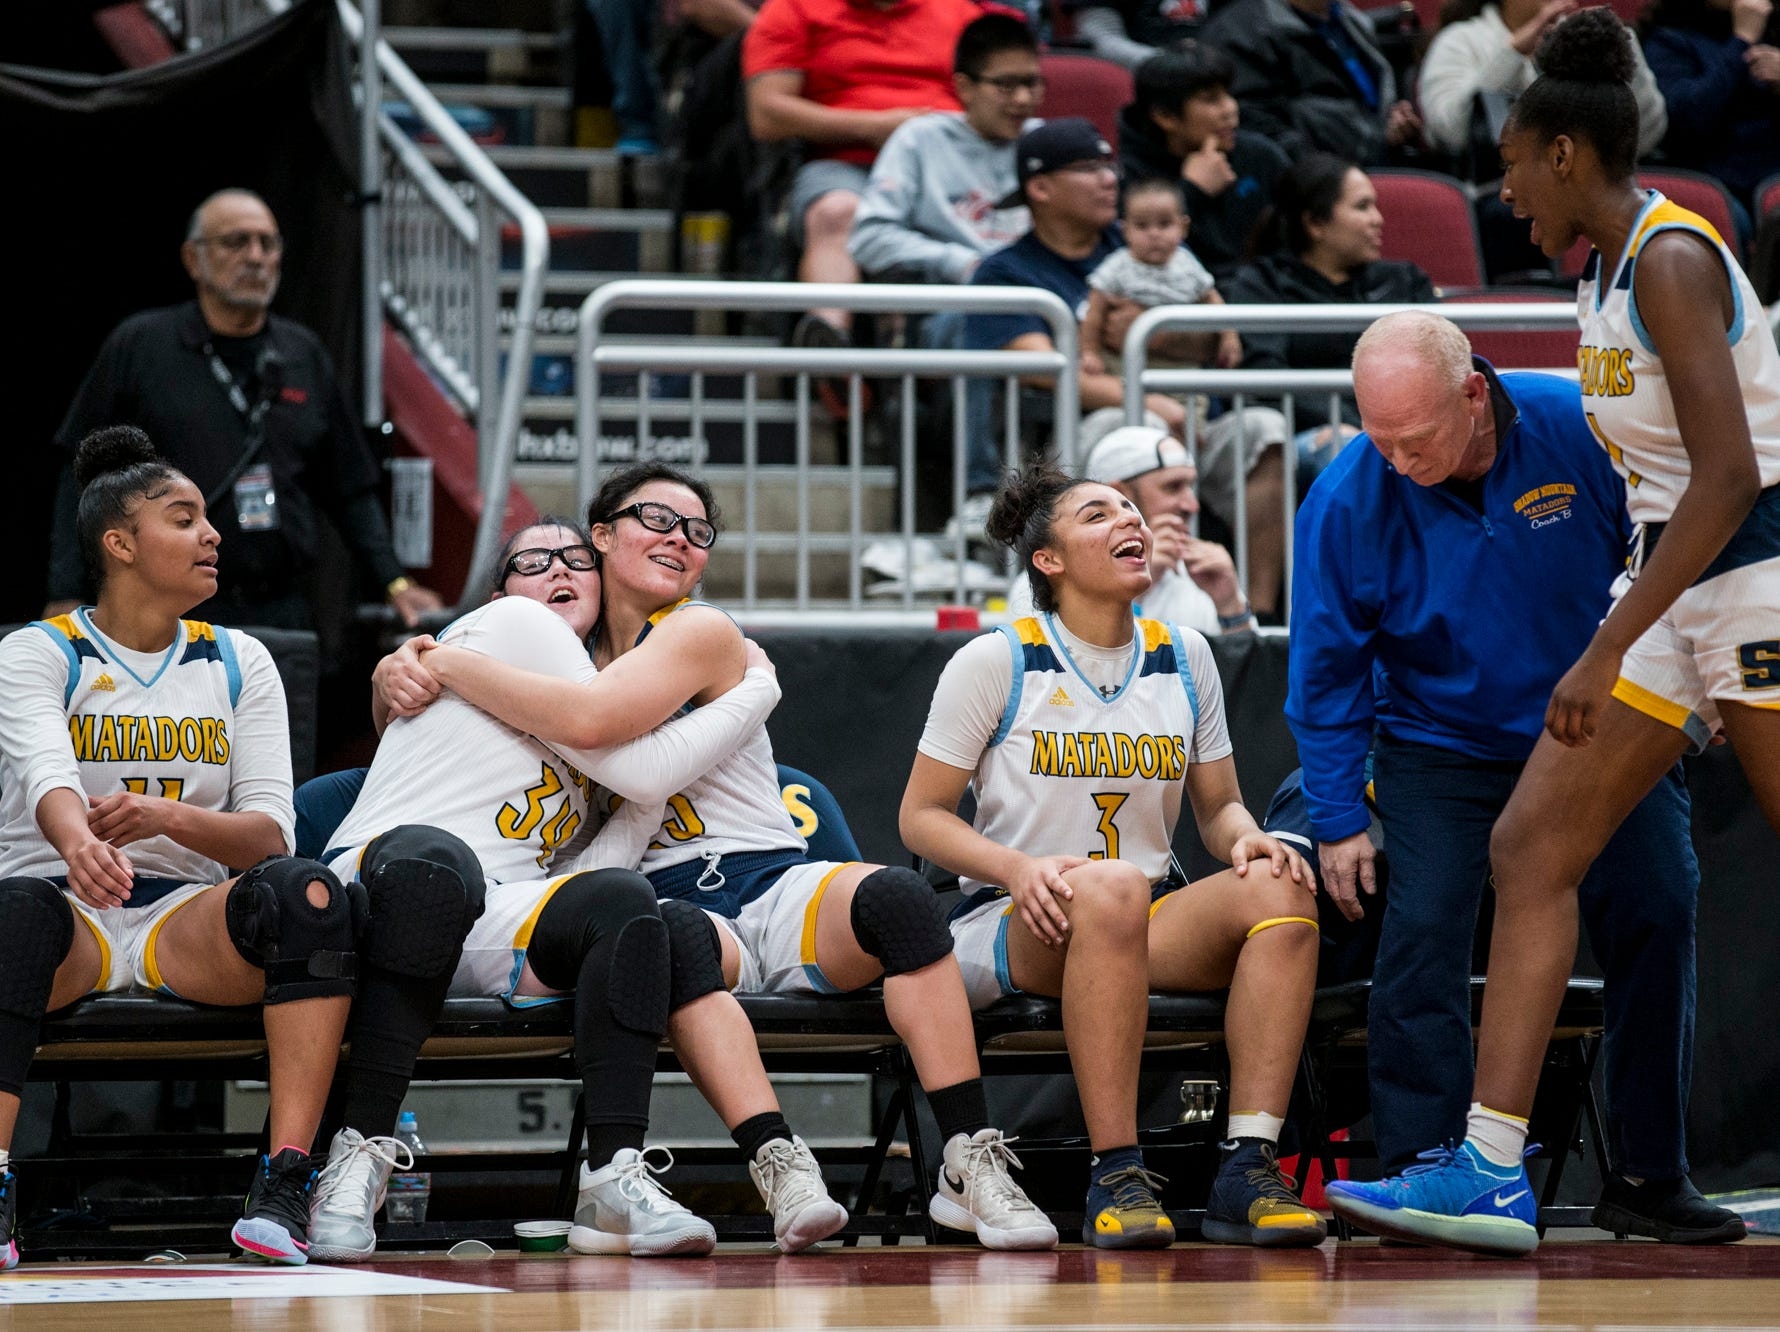 Shadow Mountain's bench celebrates before defeating Seton Catholic for the 4A girls basketball championship on Saturday, Feb. 23, 2019, at Gila River Arena in Glendale, Ariz.